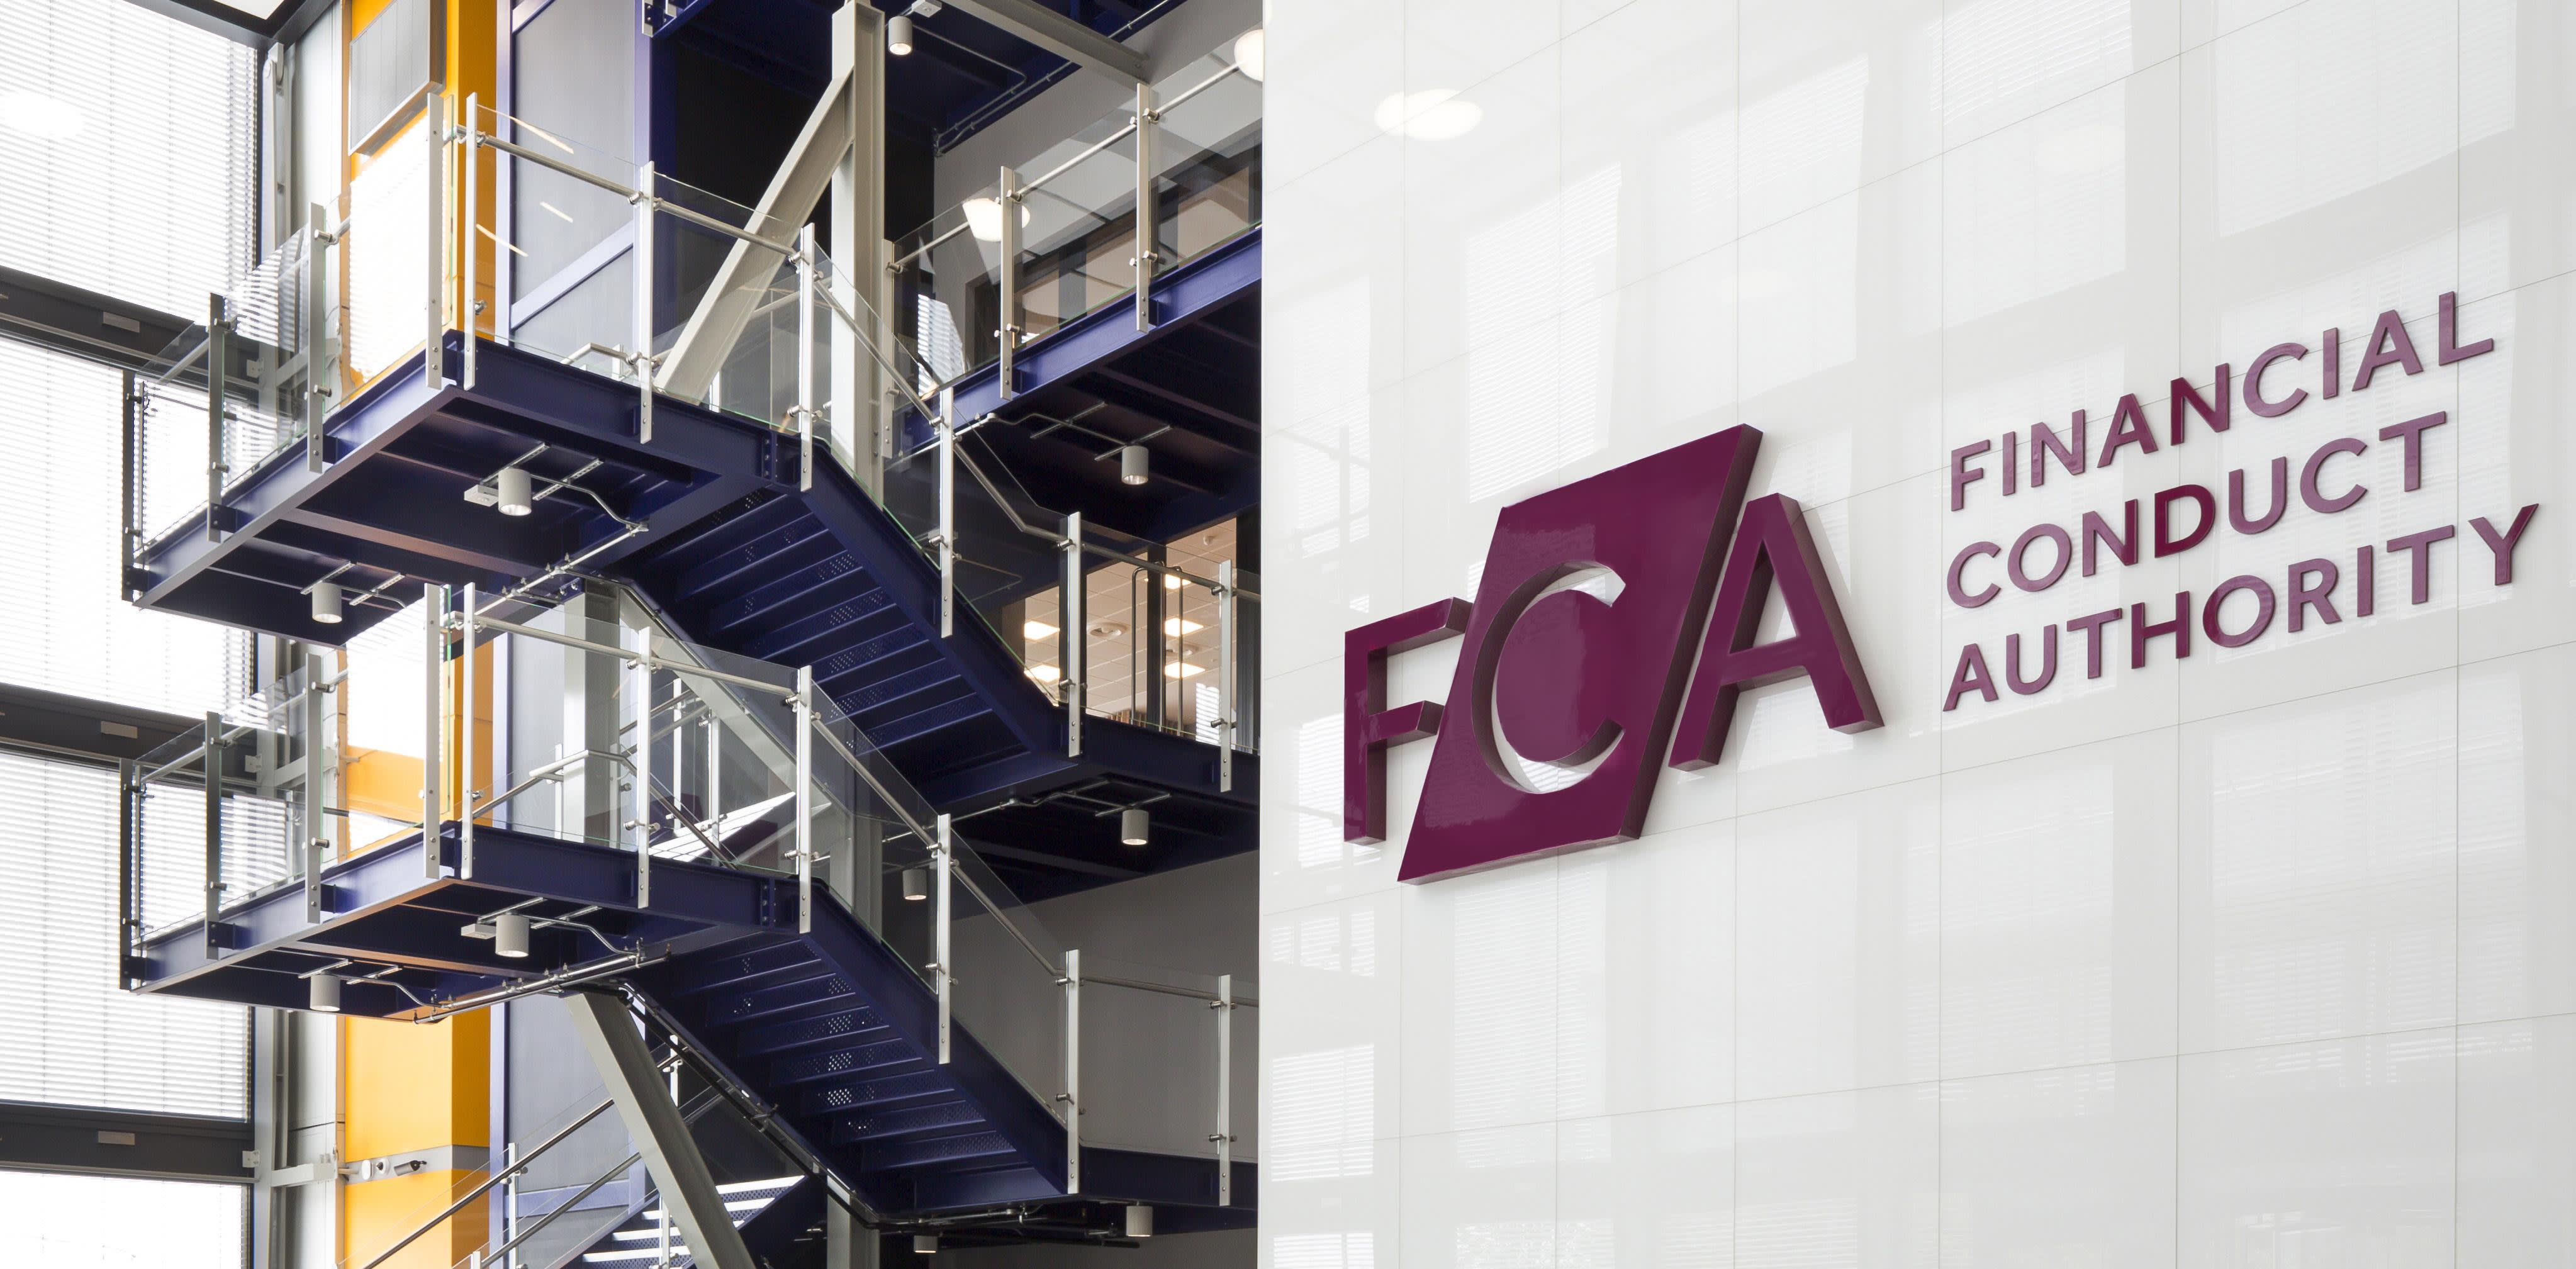 FCA warns advisers on using Whatsapp and social media